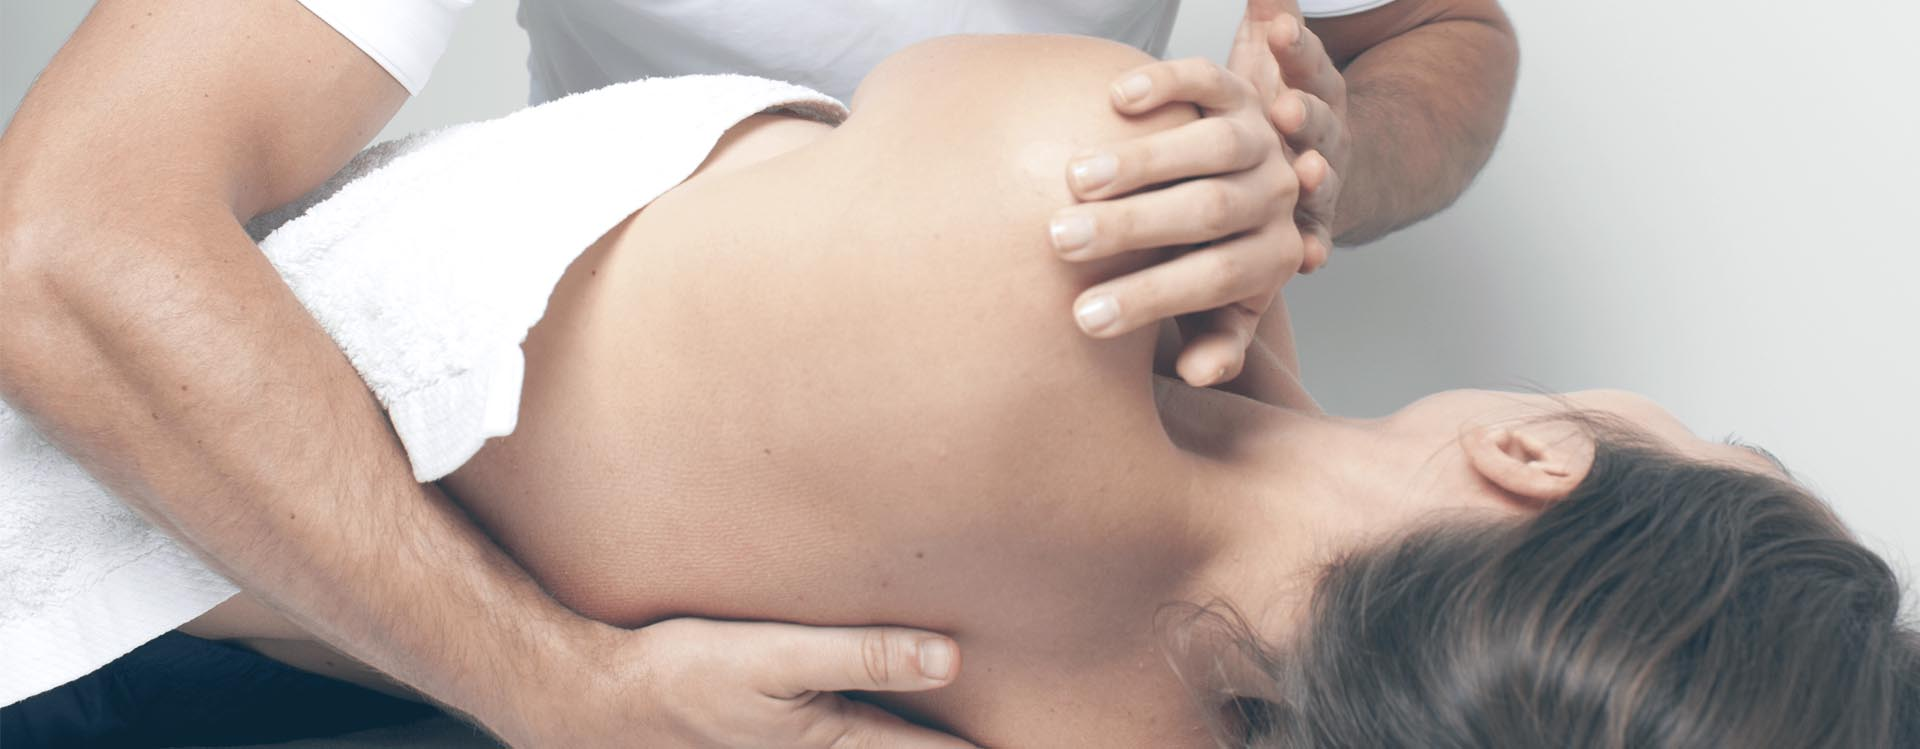 Manual therapy and massage